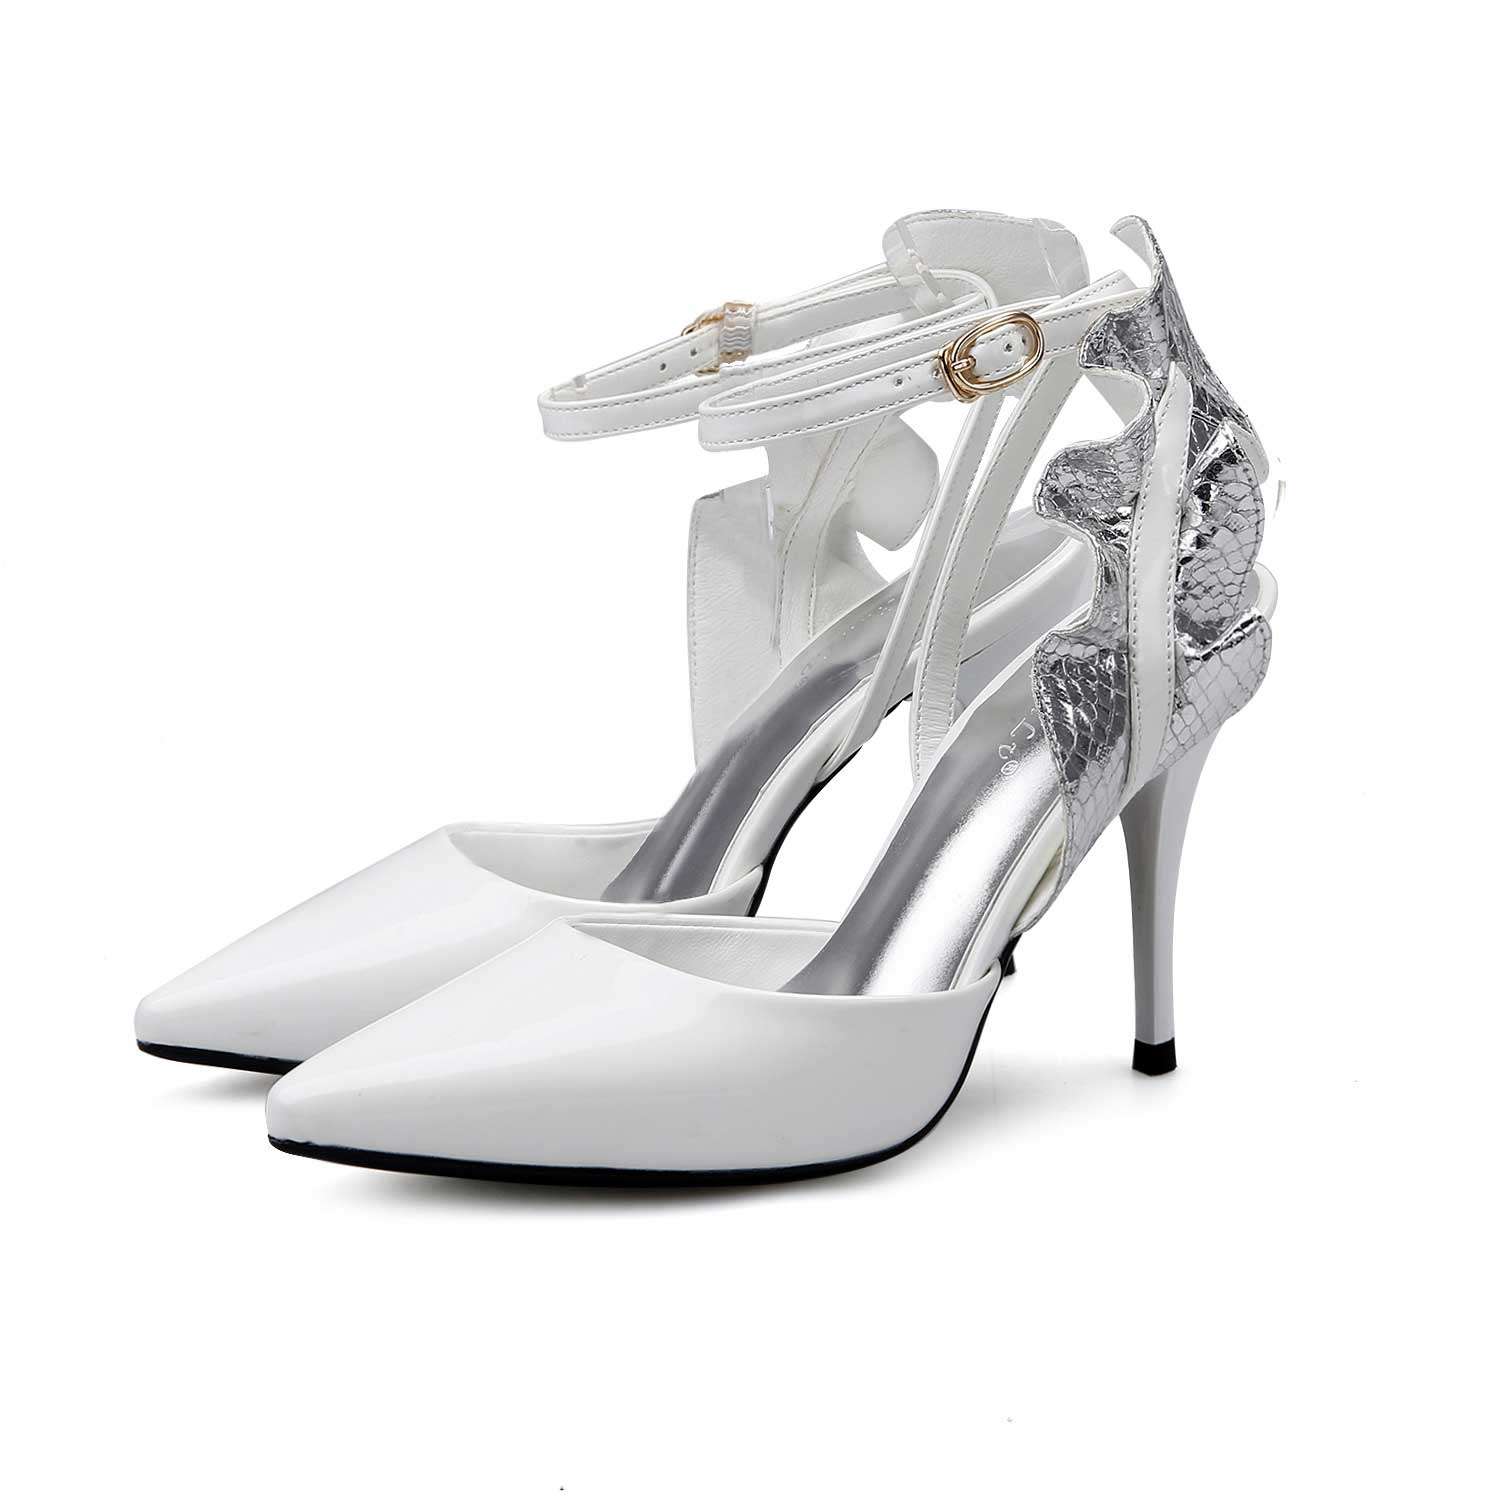 White Sexy Flower Pointed Toe Sandals Stiletto Heels With Ankle